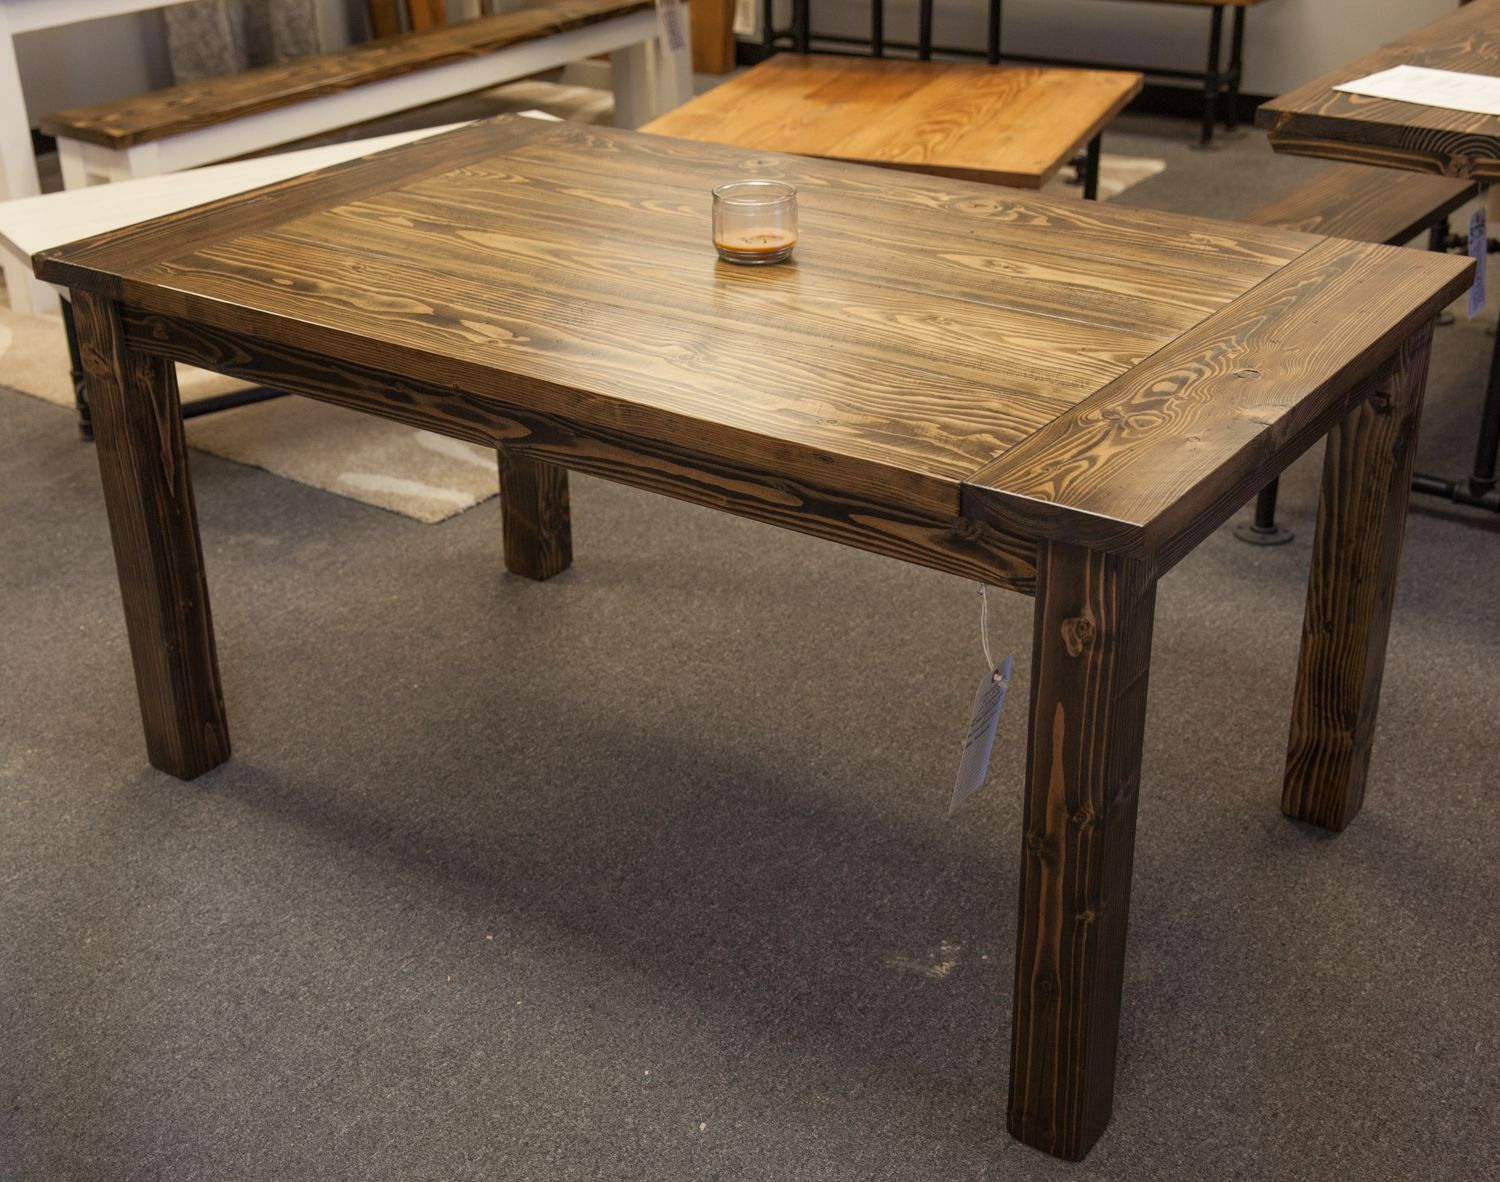 rustic kitchen table Solid wood farmhouse table with breadboards Distressed dark walnut top Kitchen table Dining